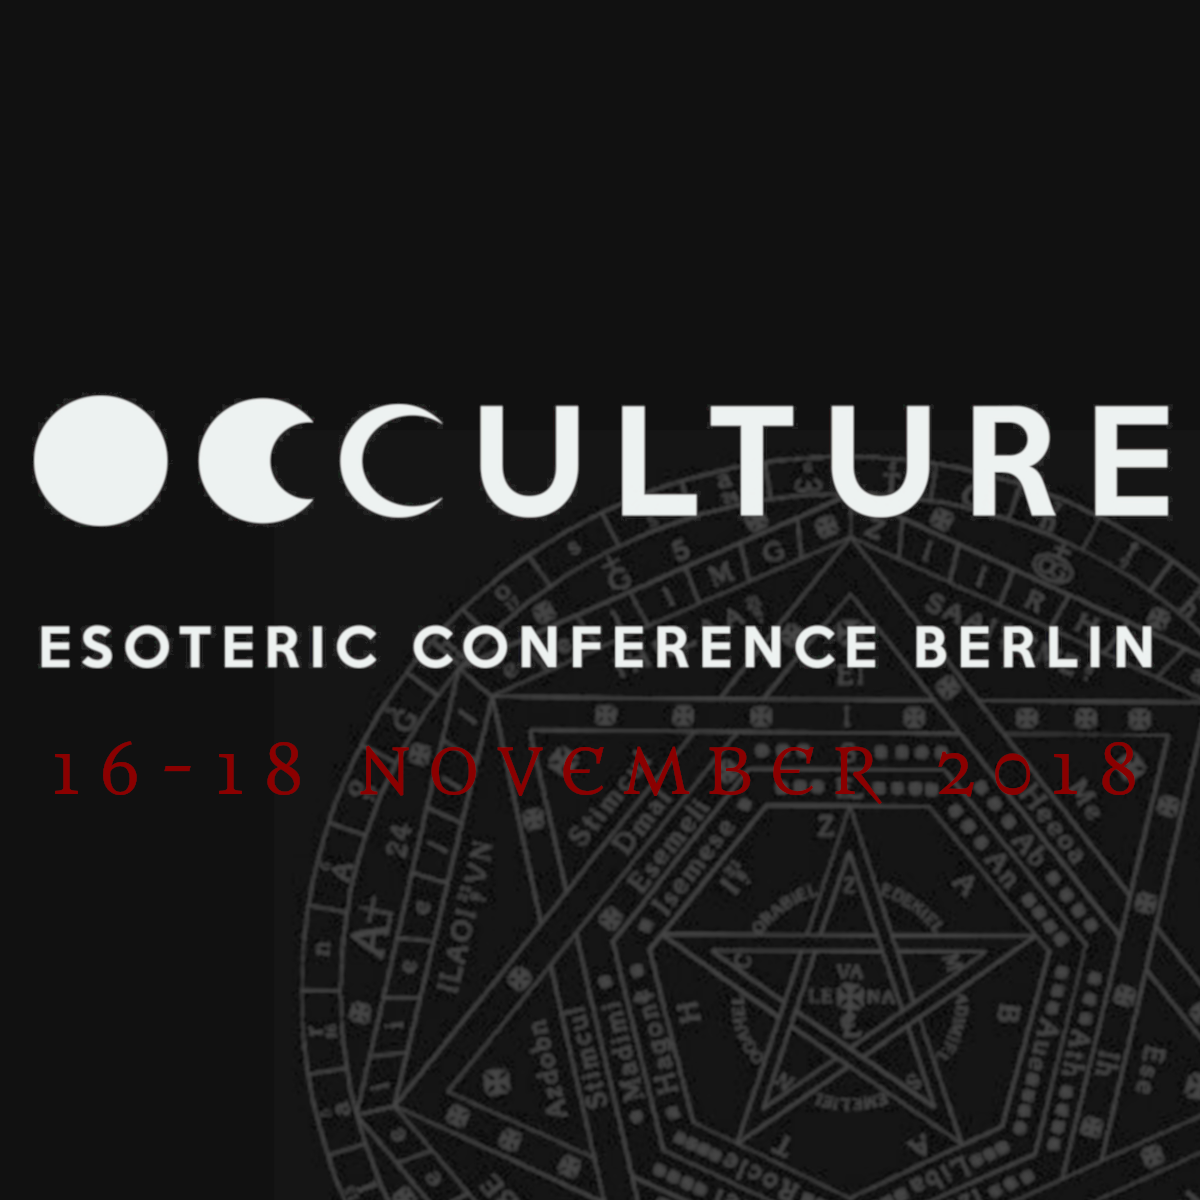 OCCULTURE ESOTERIC CONFERENCE BERLIN 2018